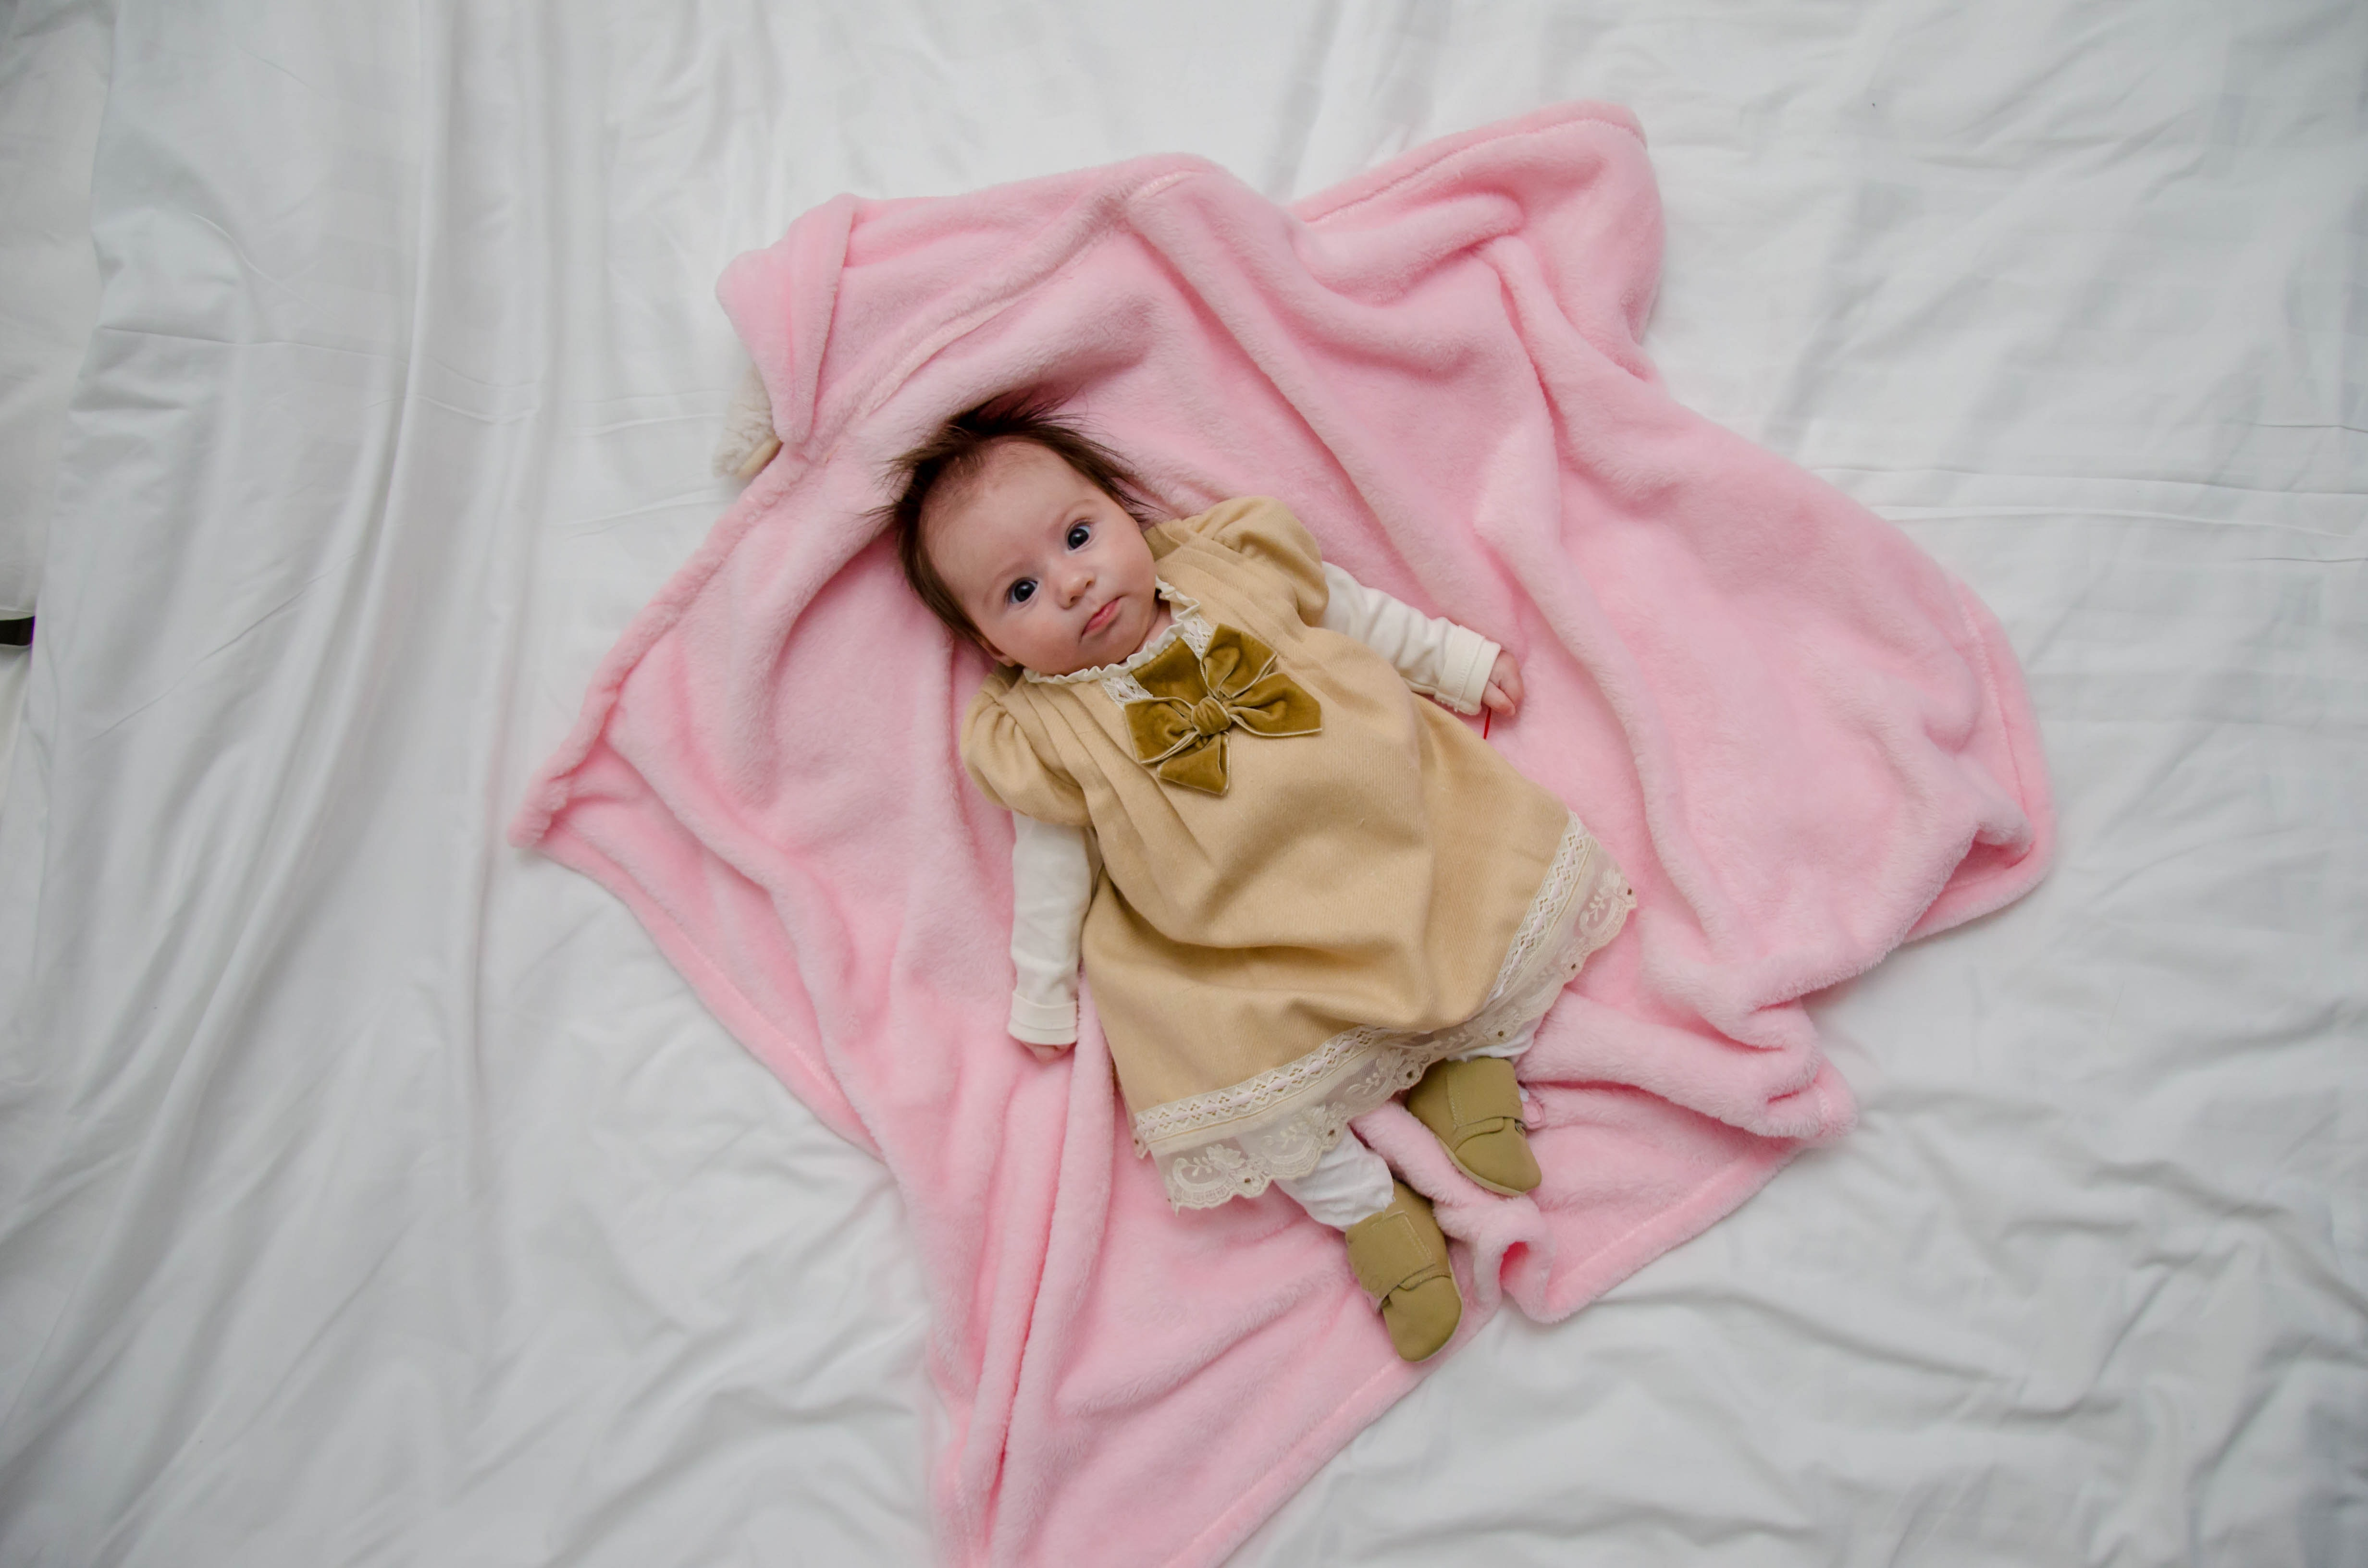 Baby Sleeping Beside Girl On Gray Floral Textile 183 Free